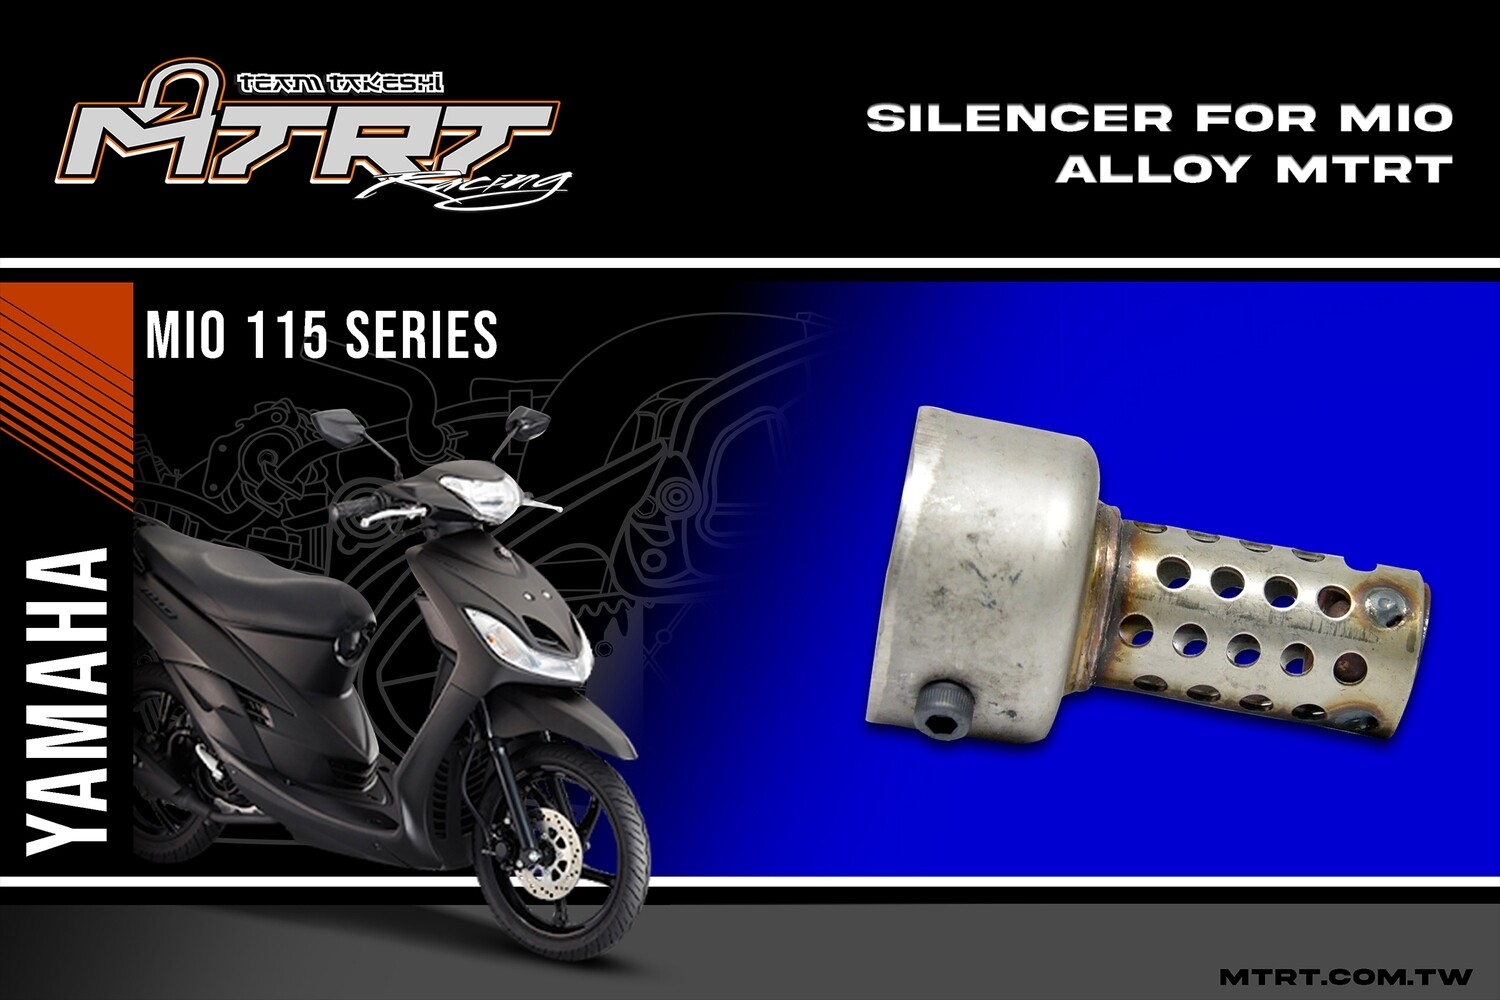 SILENCER FOR MIO METAL MTRT